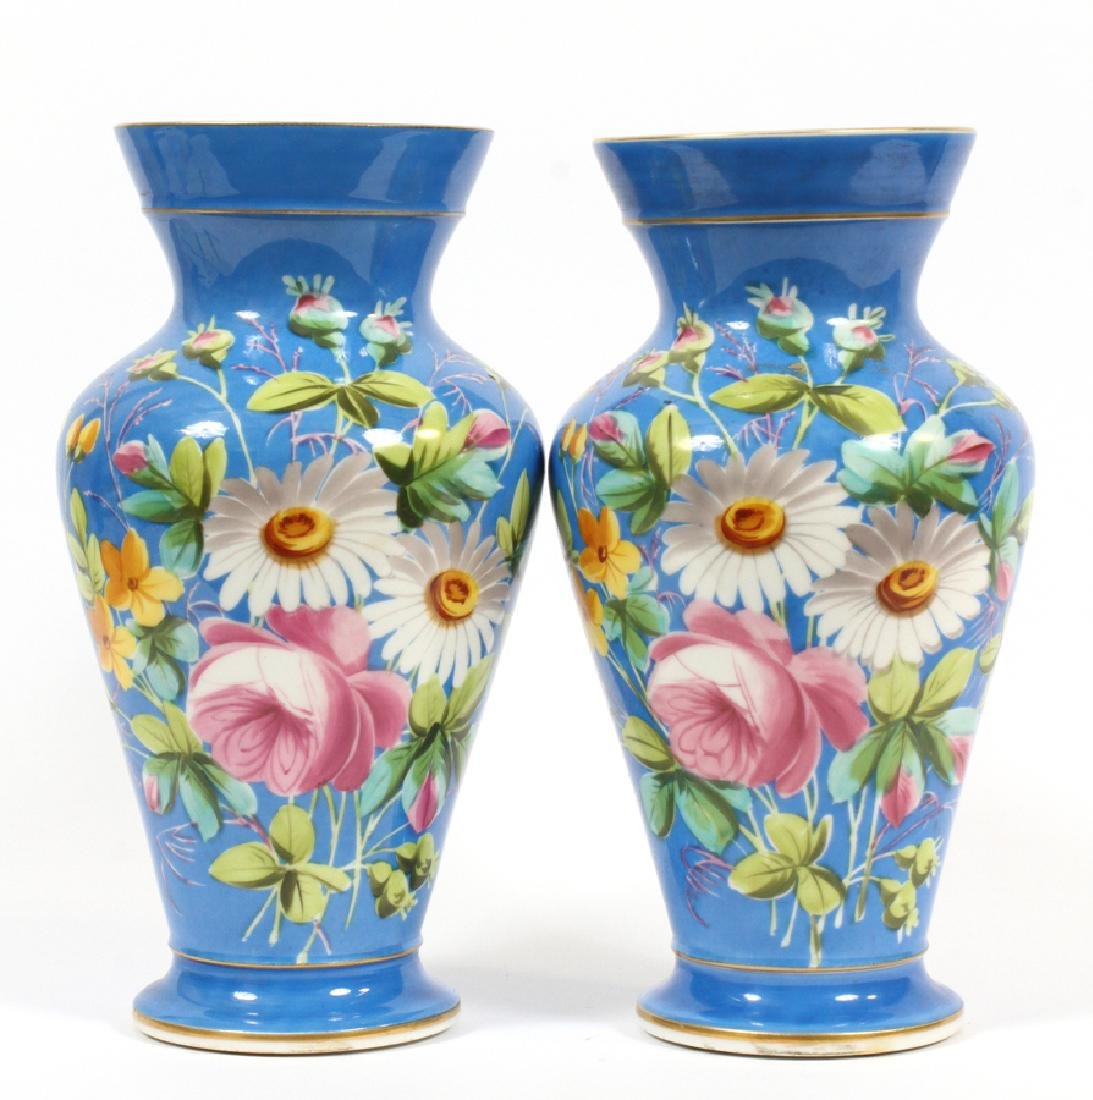 FRENCH PORCELAIN URNS, 19TH C., PAIR